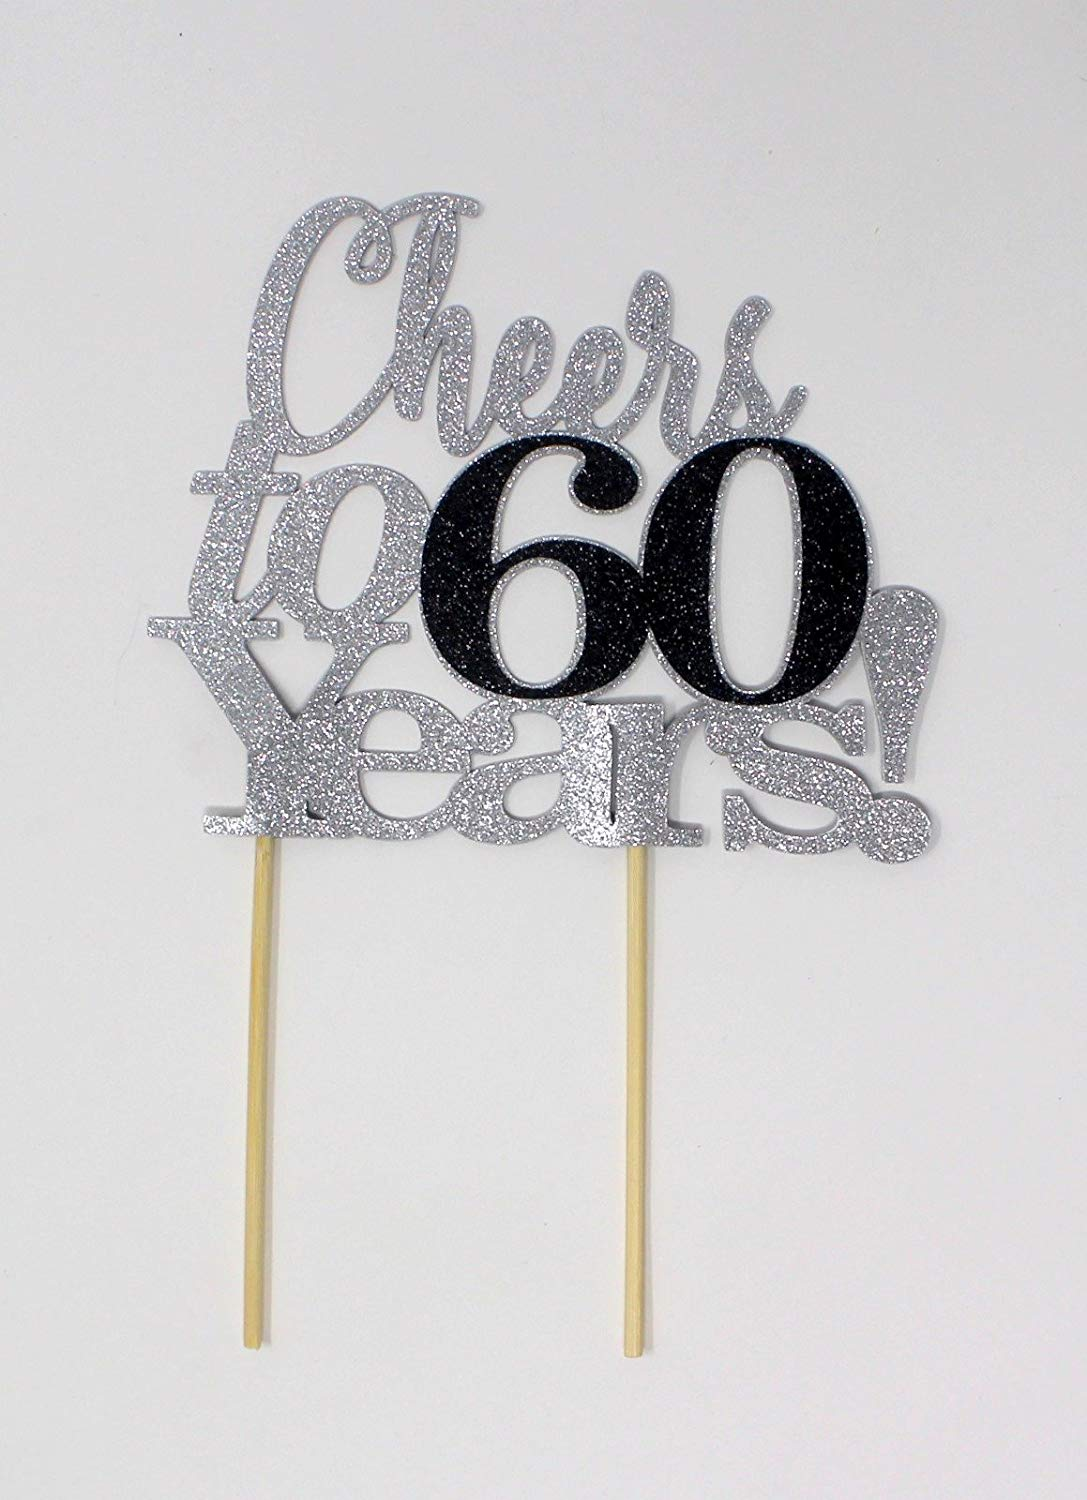 All About Details Cheers to 60 Years! Cake Topper,1pc, 60th Birthday, Anniversary, Party Decor, Glitter Topper (Silver & Black)